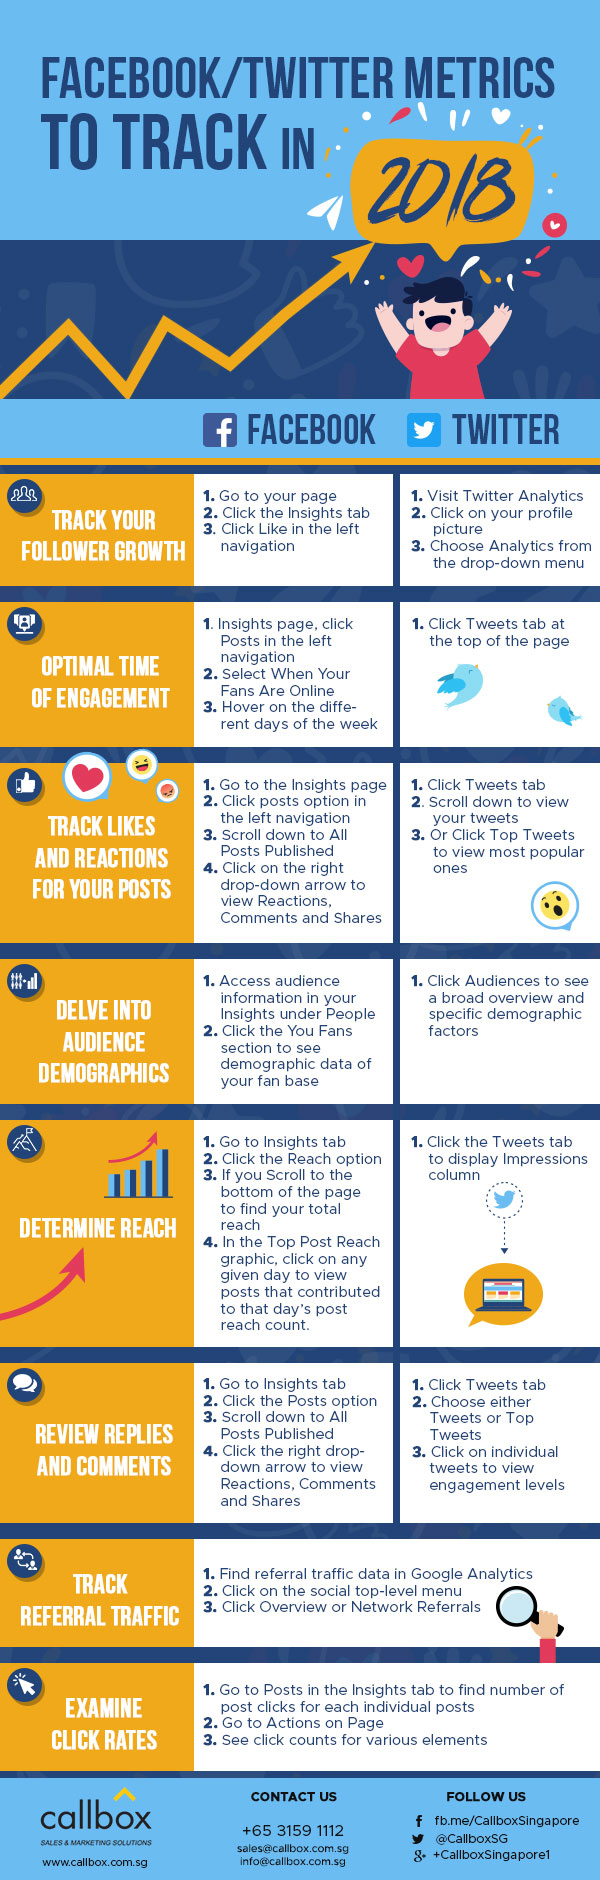 Facebook and Twitter Metrics to Track in 2018